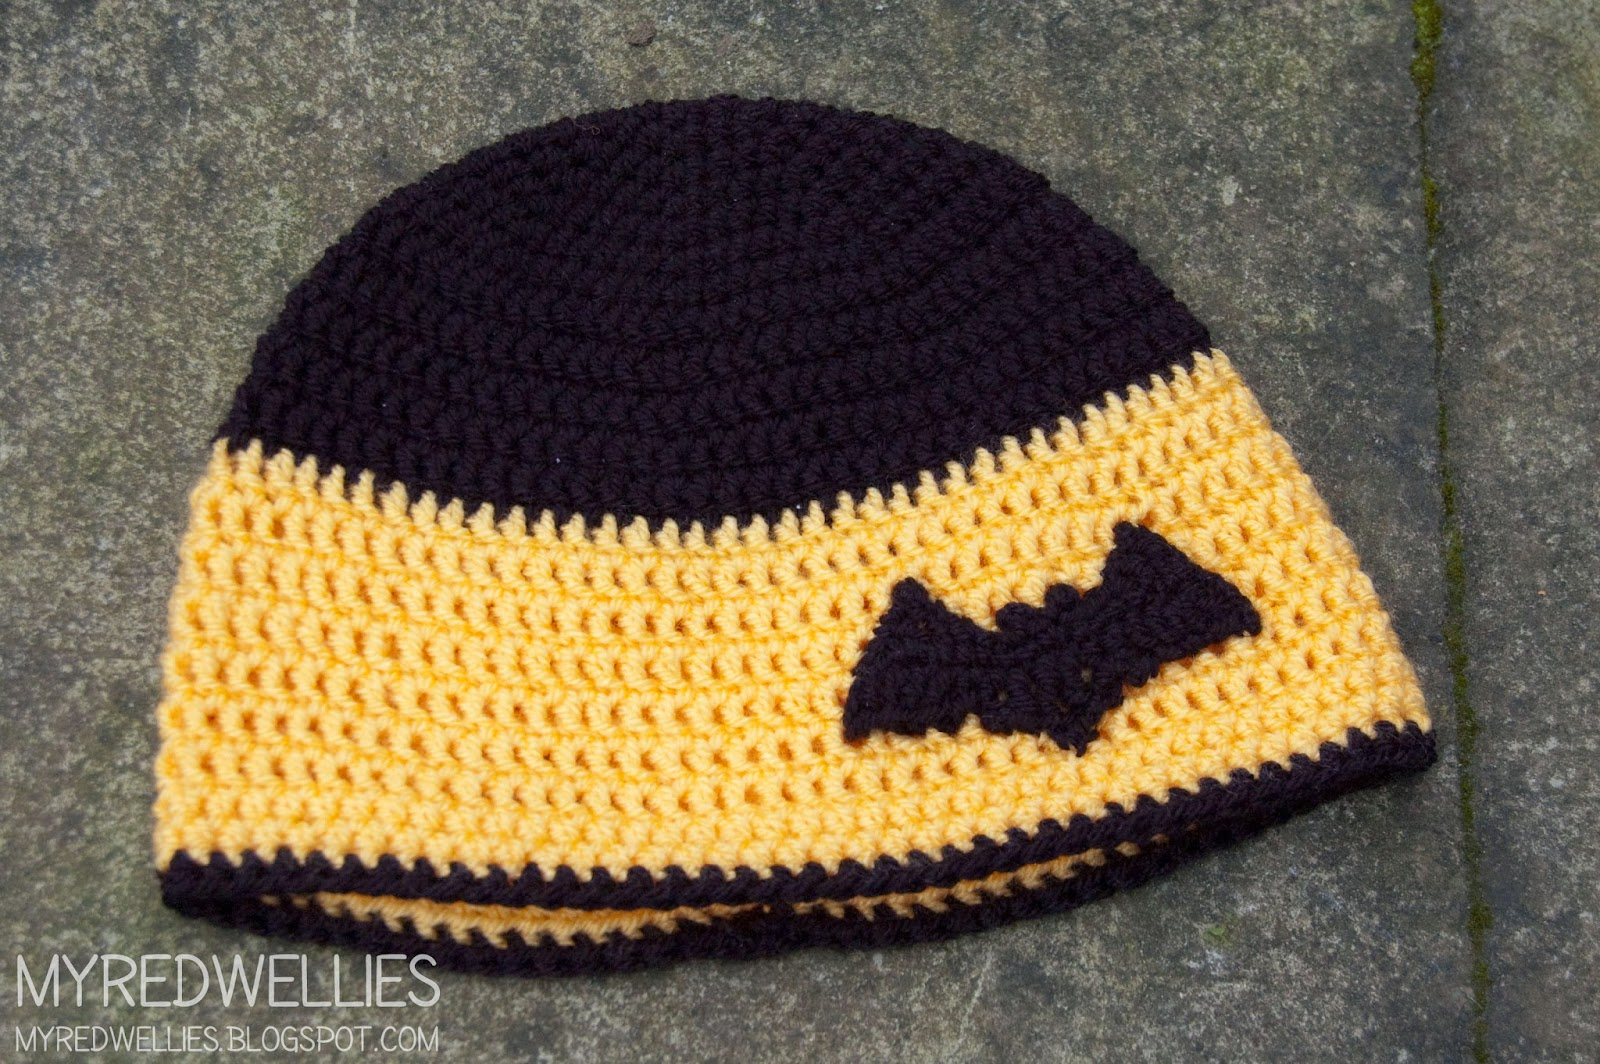 Crochet Pattern Batman Hat : Batman Crochet hat, a handmade gift My Red Wellies